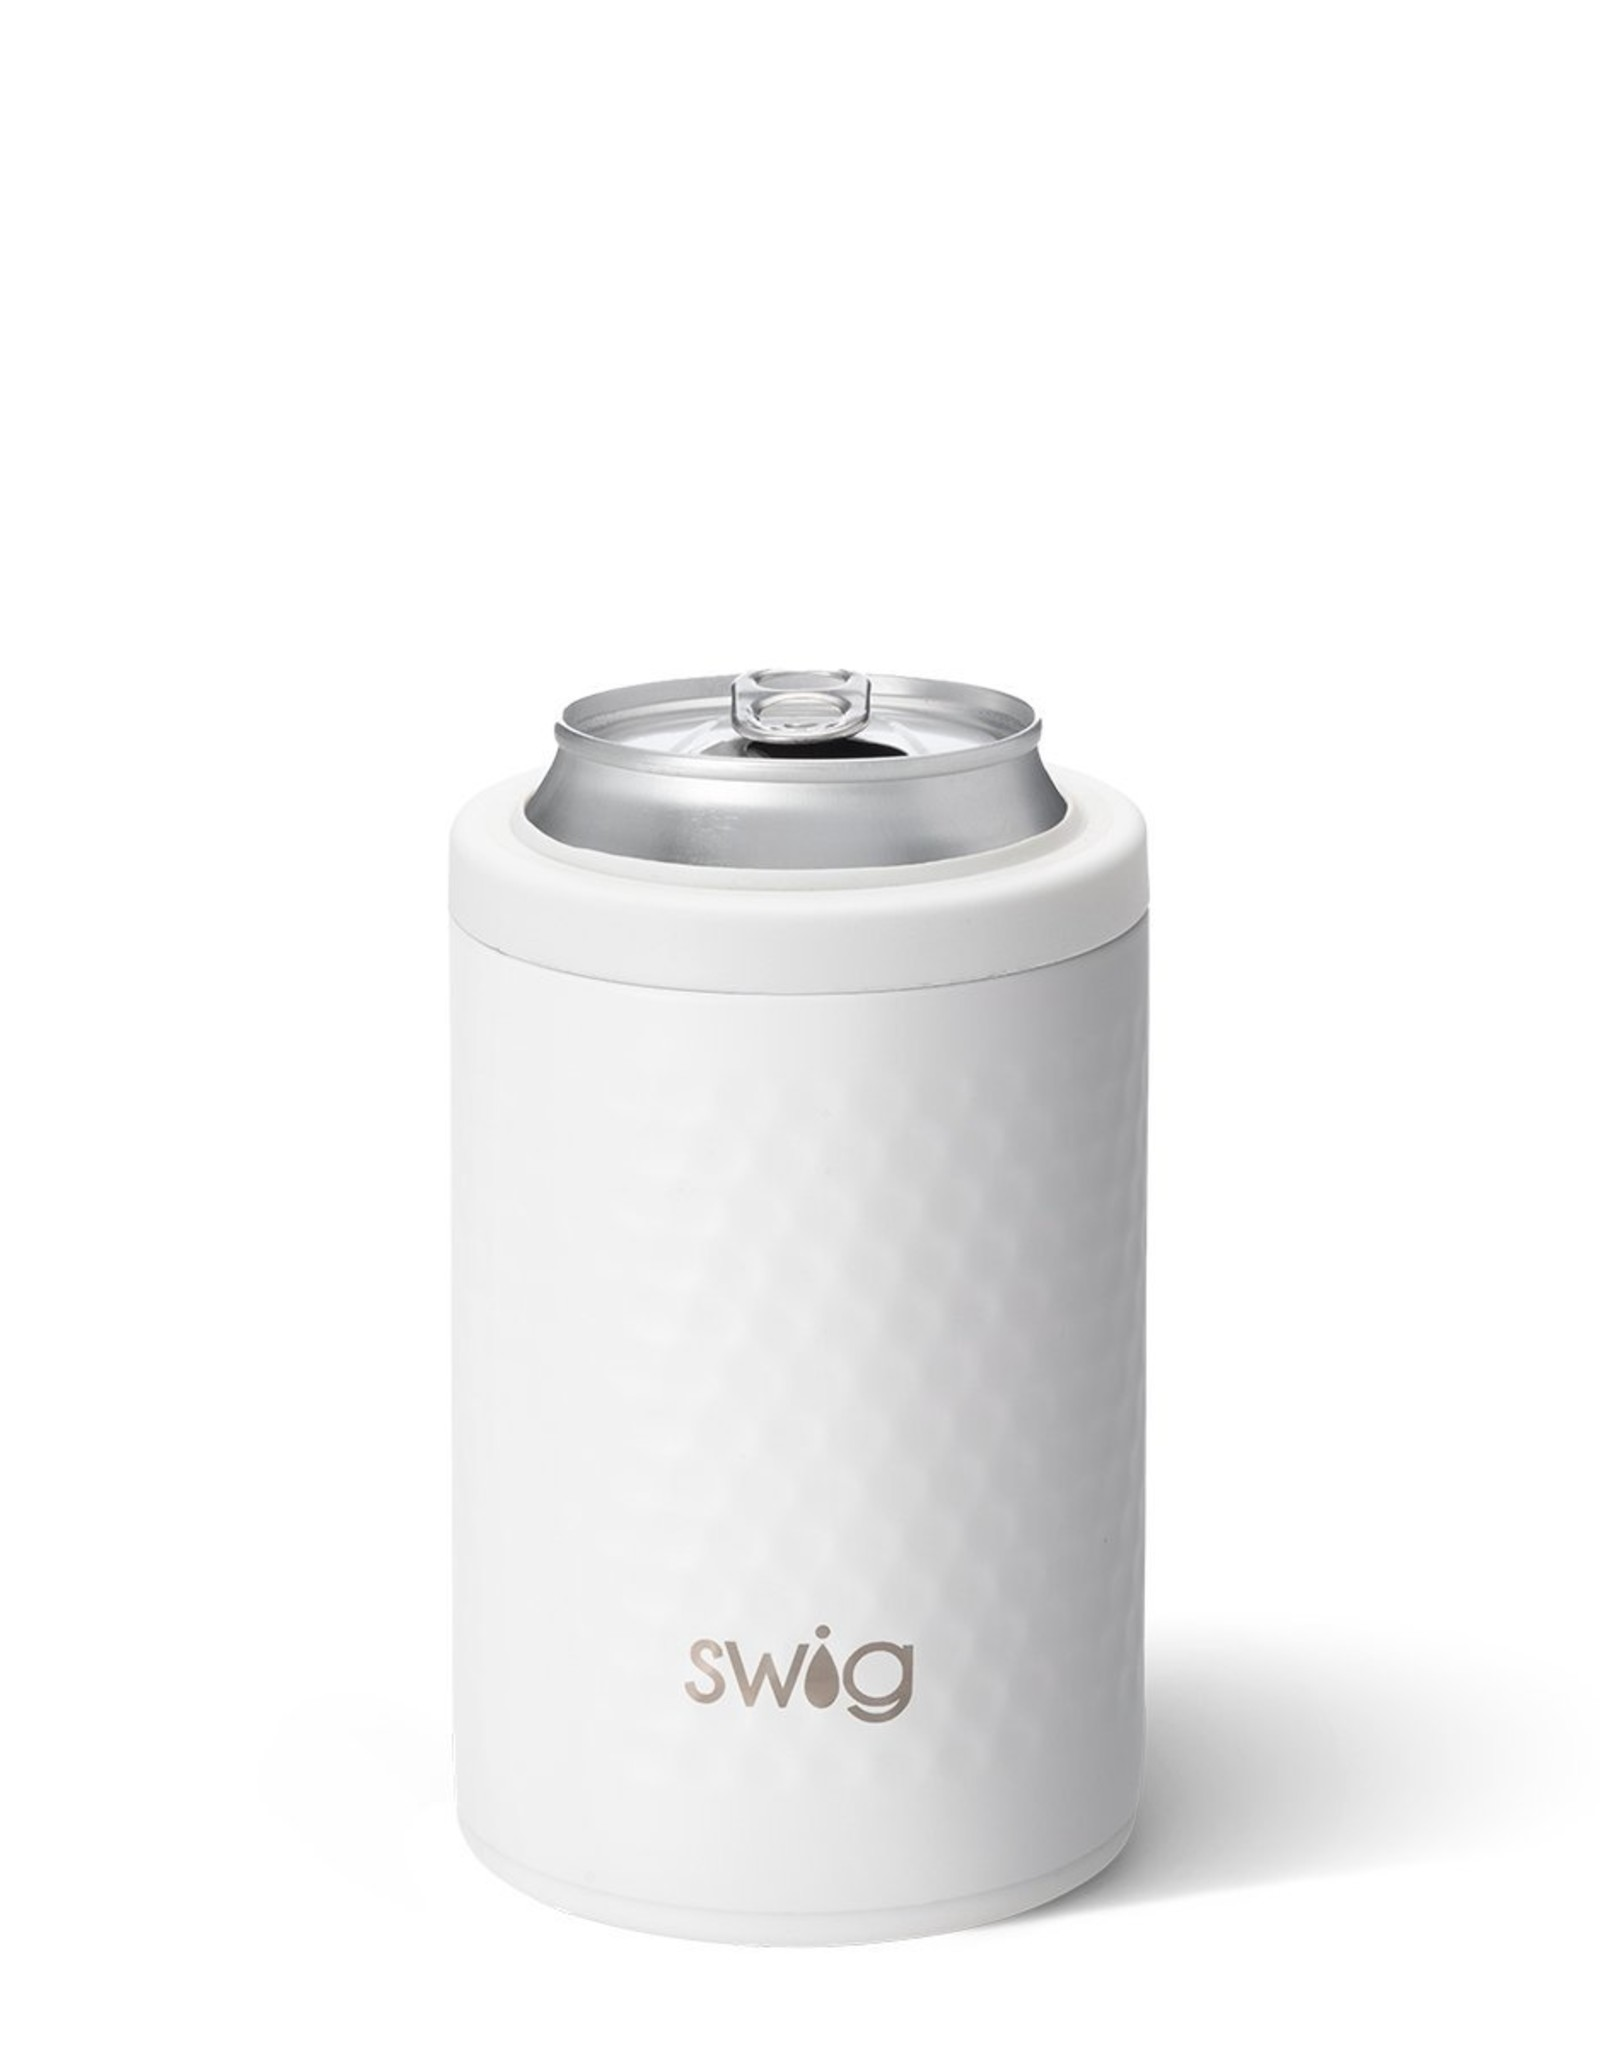 Swig Life 12oz Can Cooler ParTee